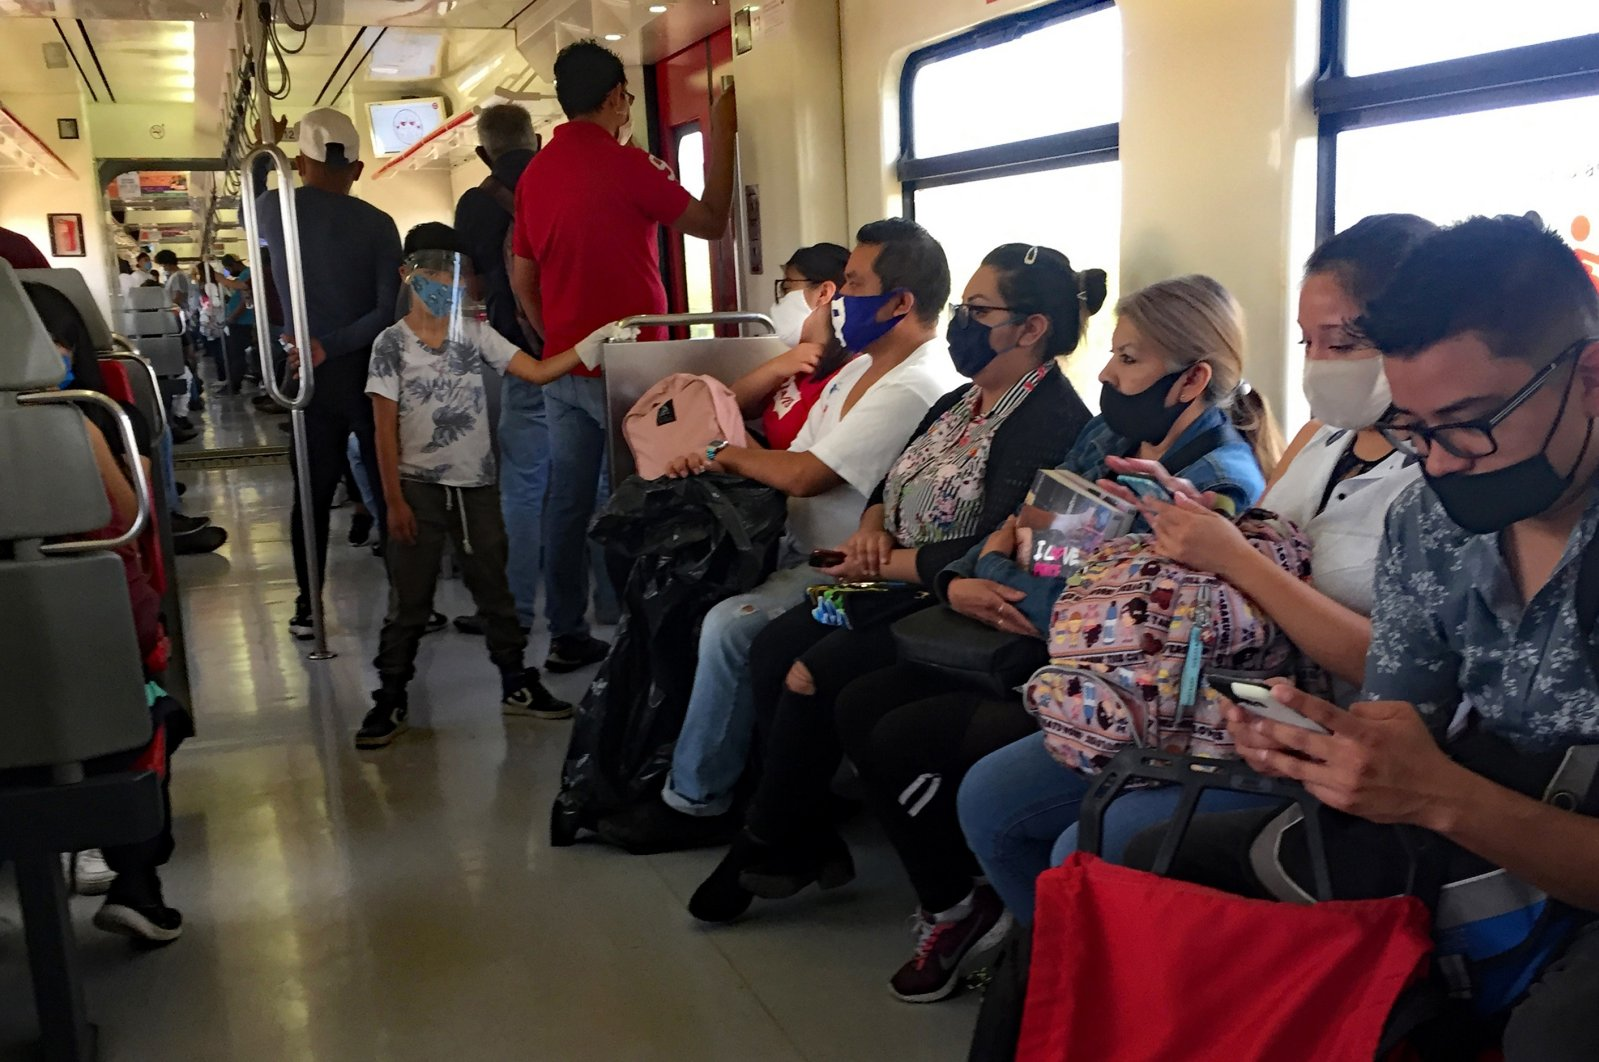 Commuters wear face masks on a Metrobus, Mexico City, July 21, 2020. (EPA Photo)